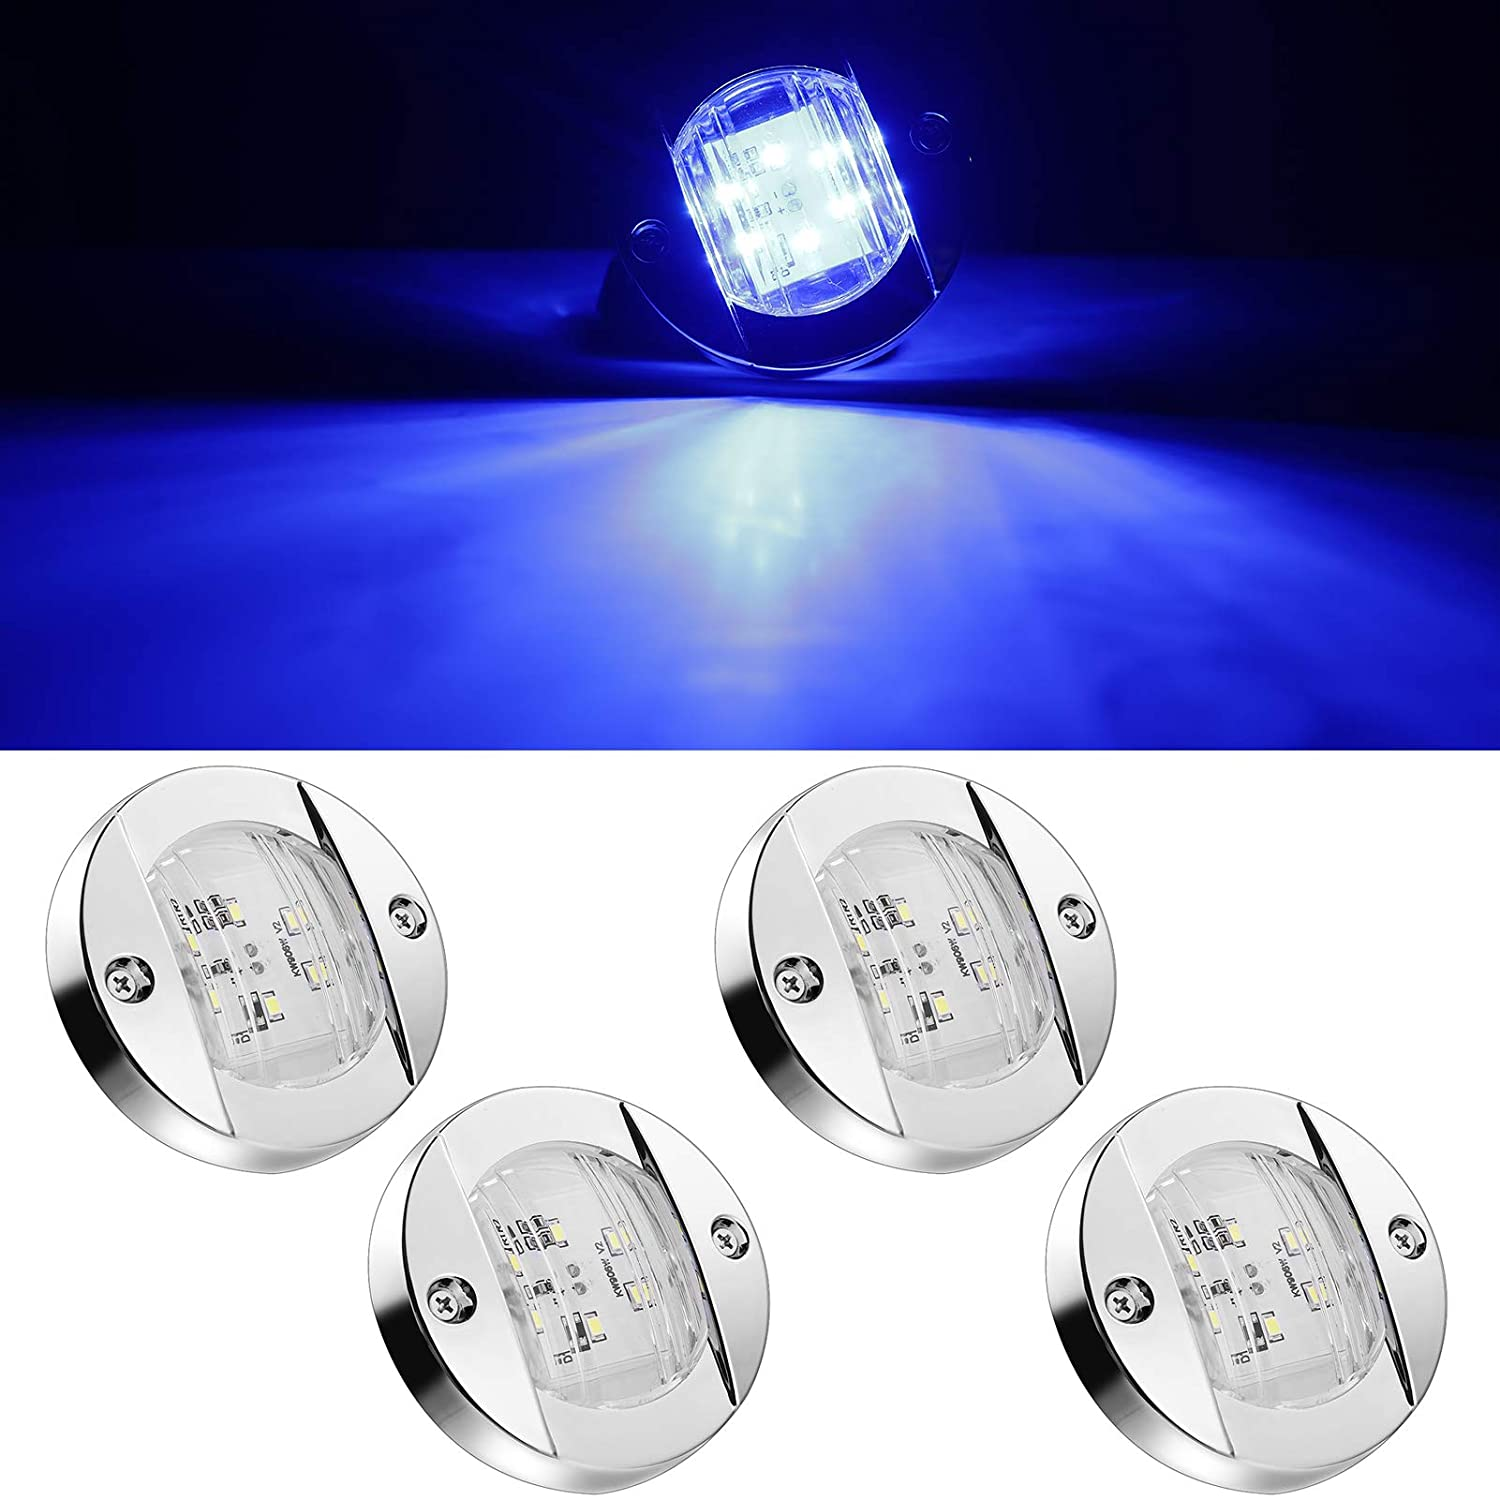 4Pcs 3 inch Round Navigation Lights Chrome Marine Clear Lens Blue Boat LED Stern Lights Transom Mount Stern Anchor Lamps 6-2835-SMD IP67 Waterproof DOT Certified